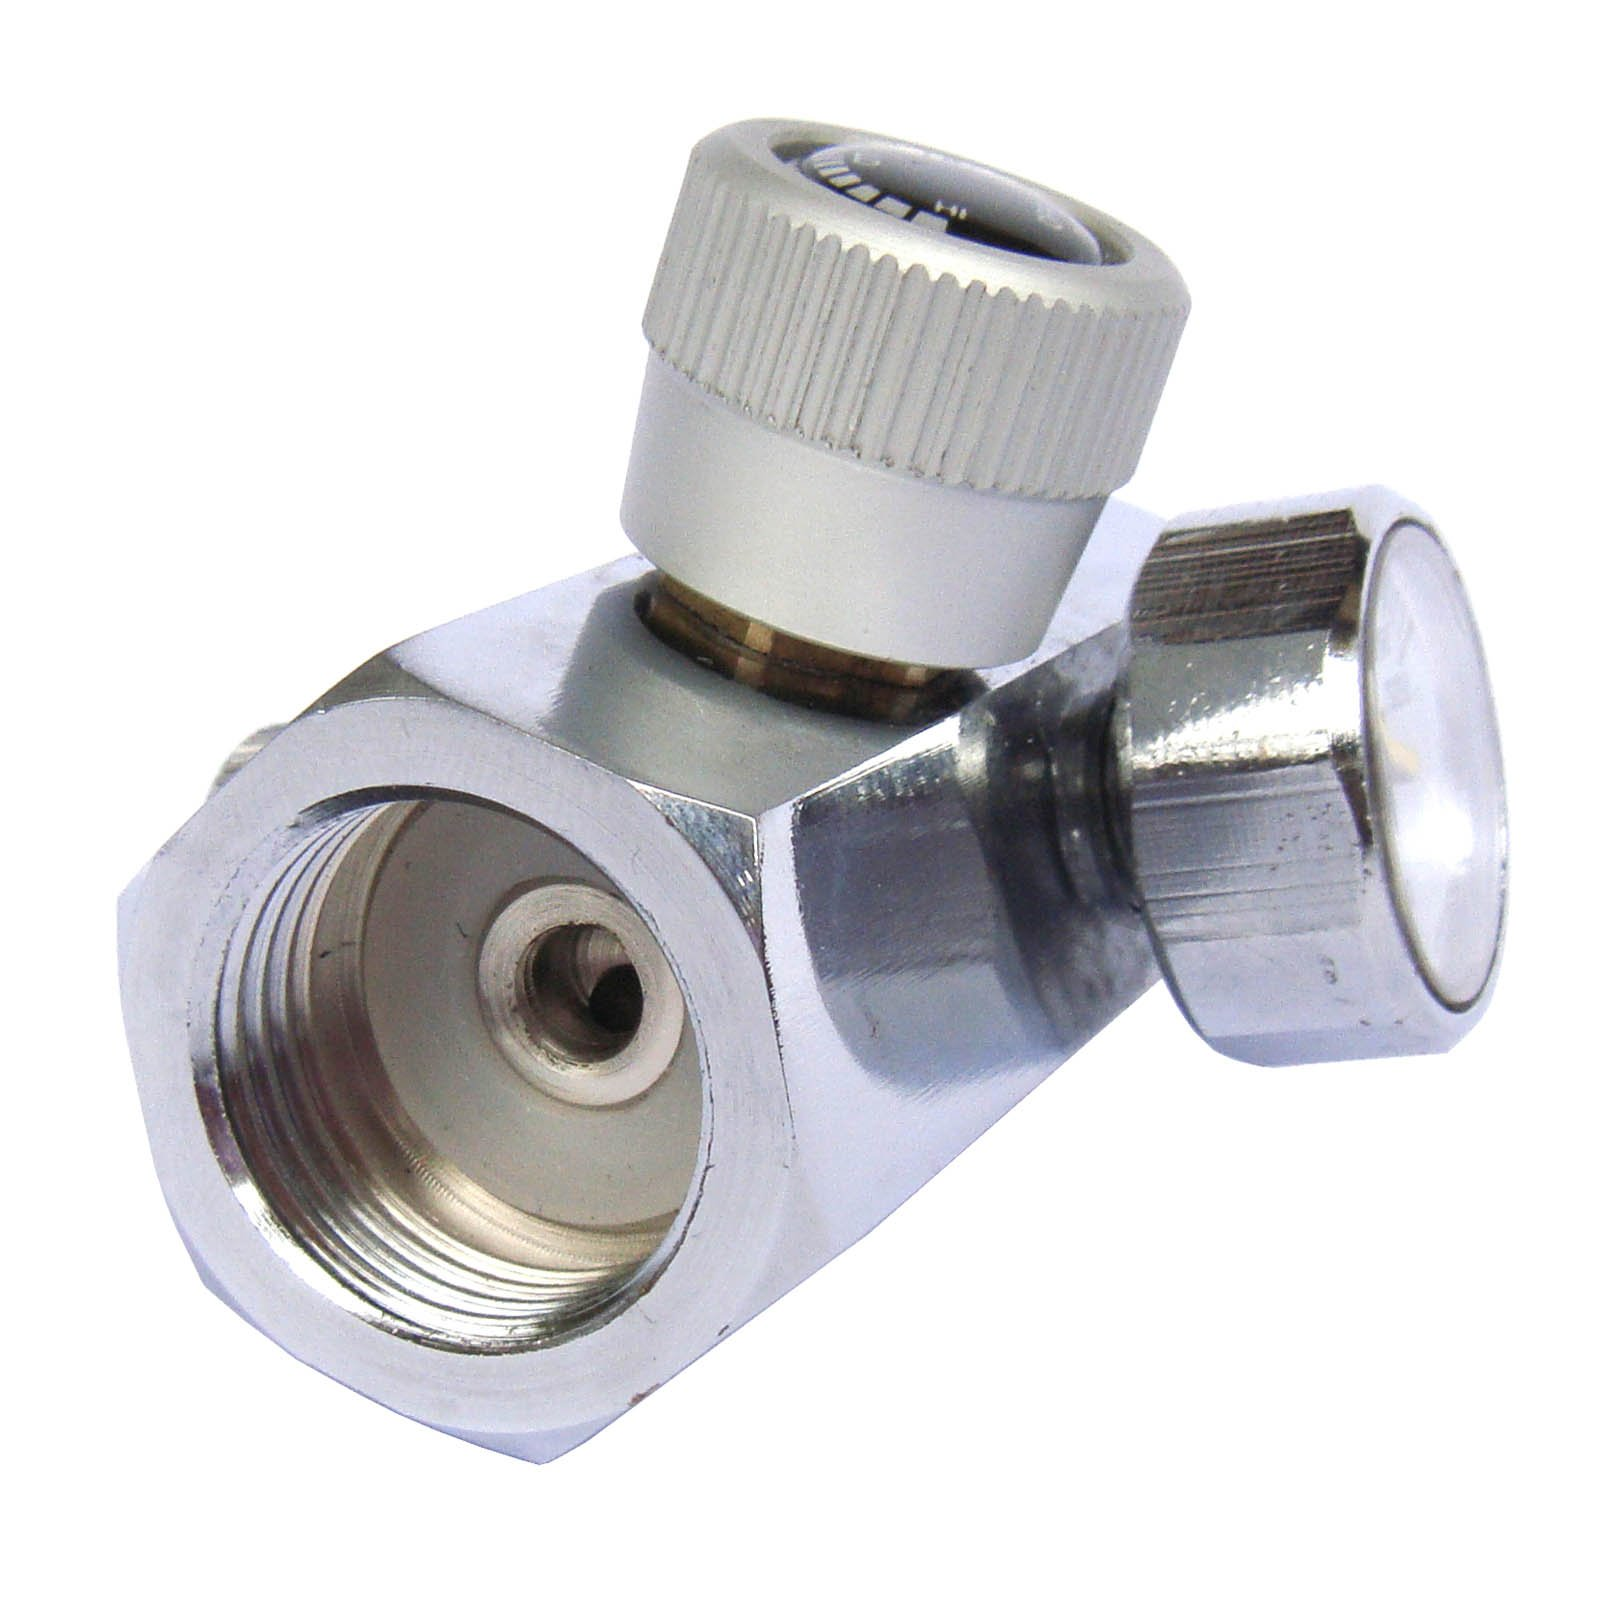 CO2 Fill Adapters On//Off for CGA320 tank with DIN 477 W21.8-14 Outer Thread